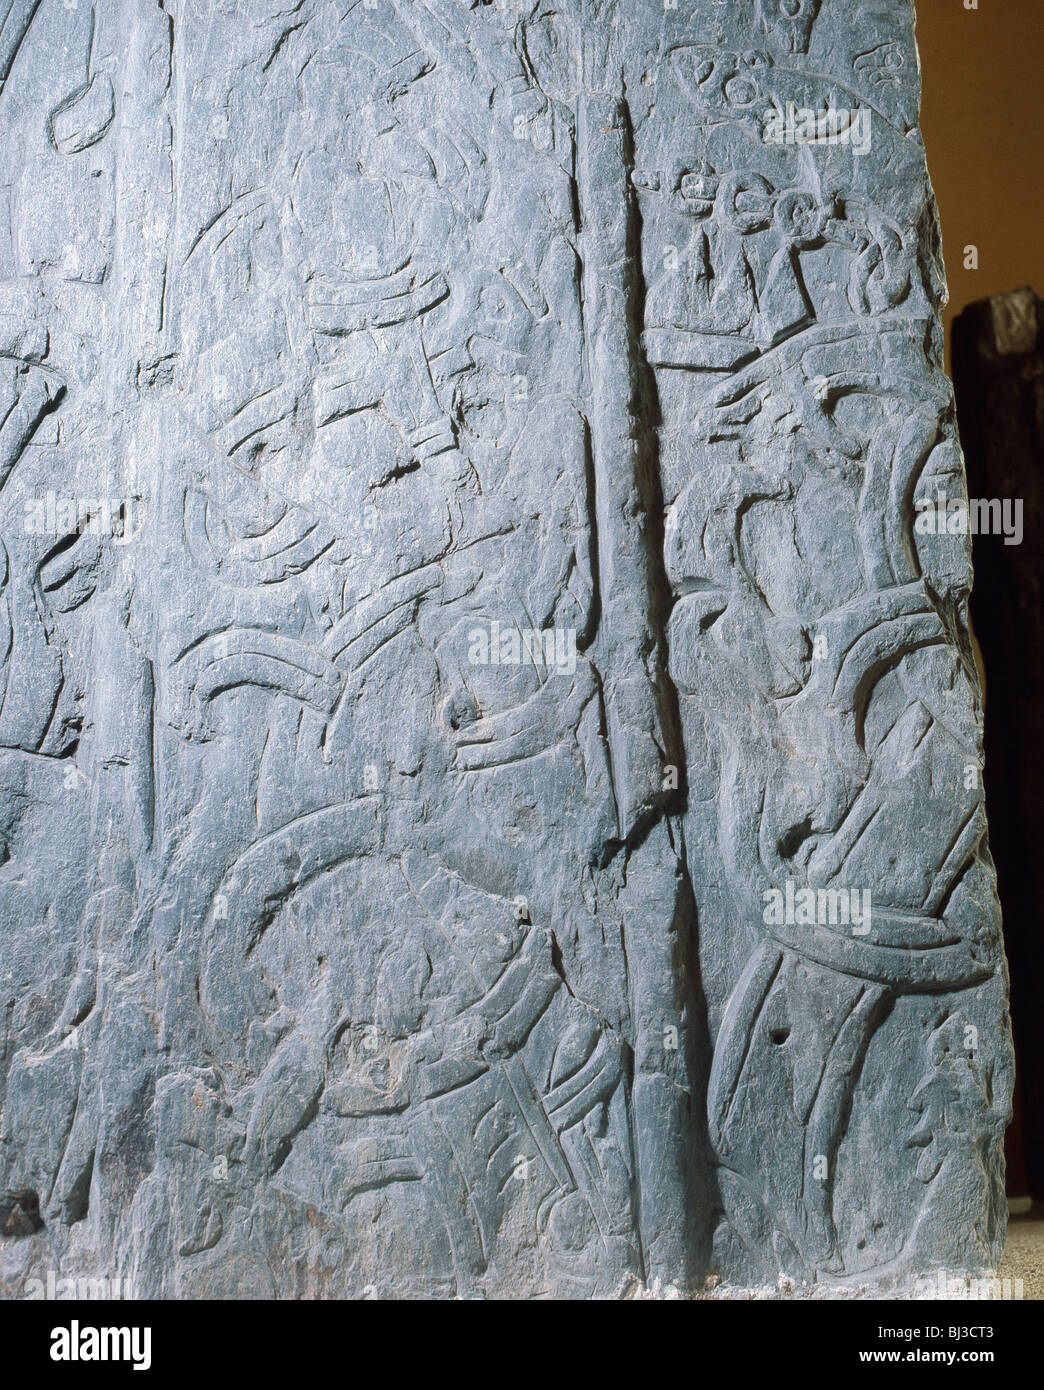 The Andreas Stone, Viking, Isle of Man, c1000.  Artist: Werner Forman - Stock Image